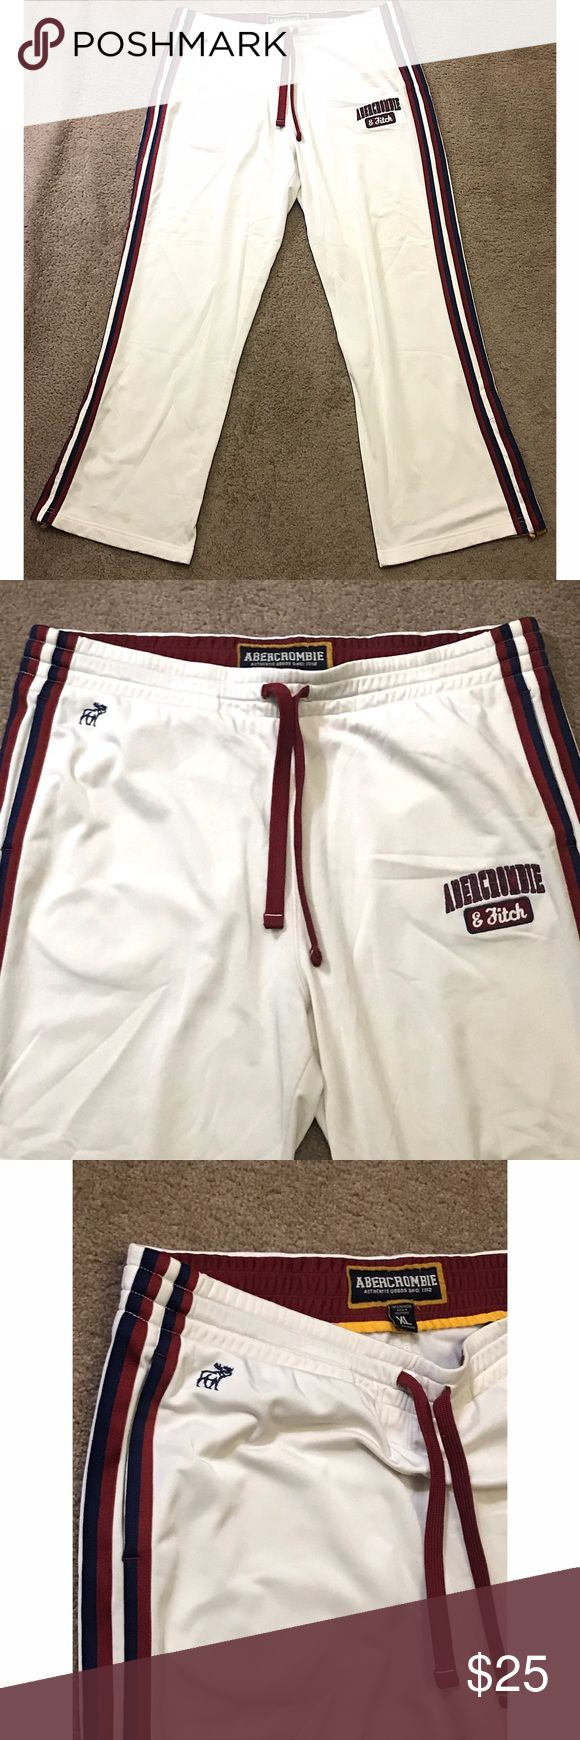 Abercrombie & Fitch Track Pants Abercrombie & Fitch Men's XL Track Pants Abercrombie & Fitch Pants Sweatpants & Joggers